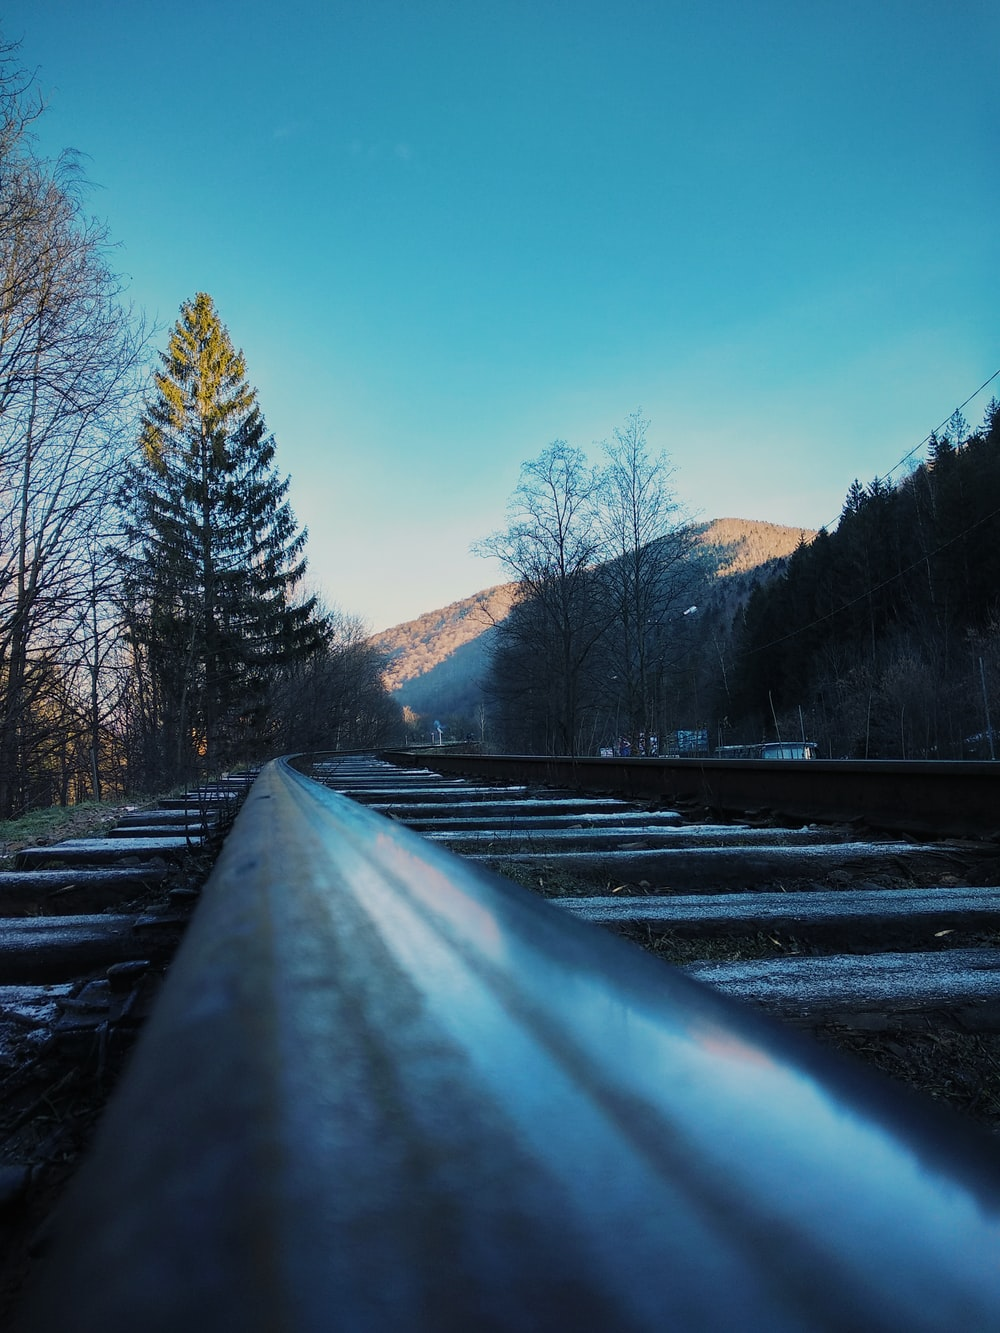 train tracks with trees and mountain in the background